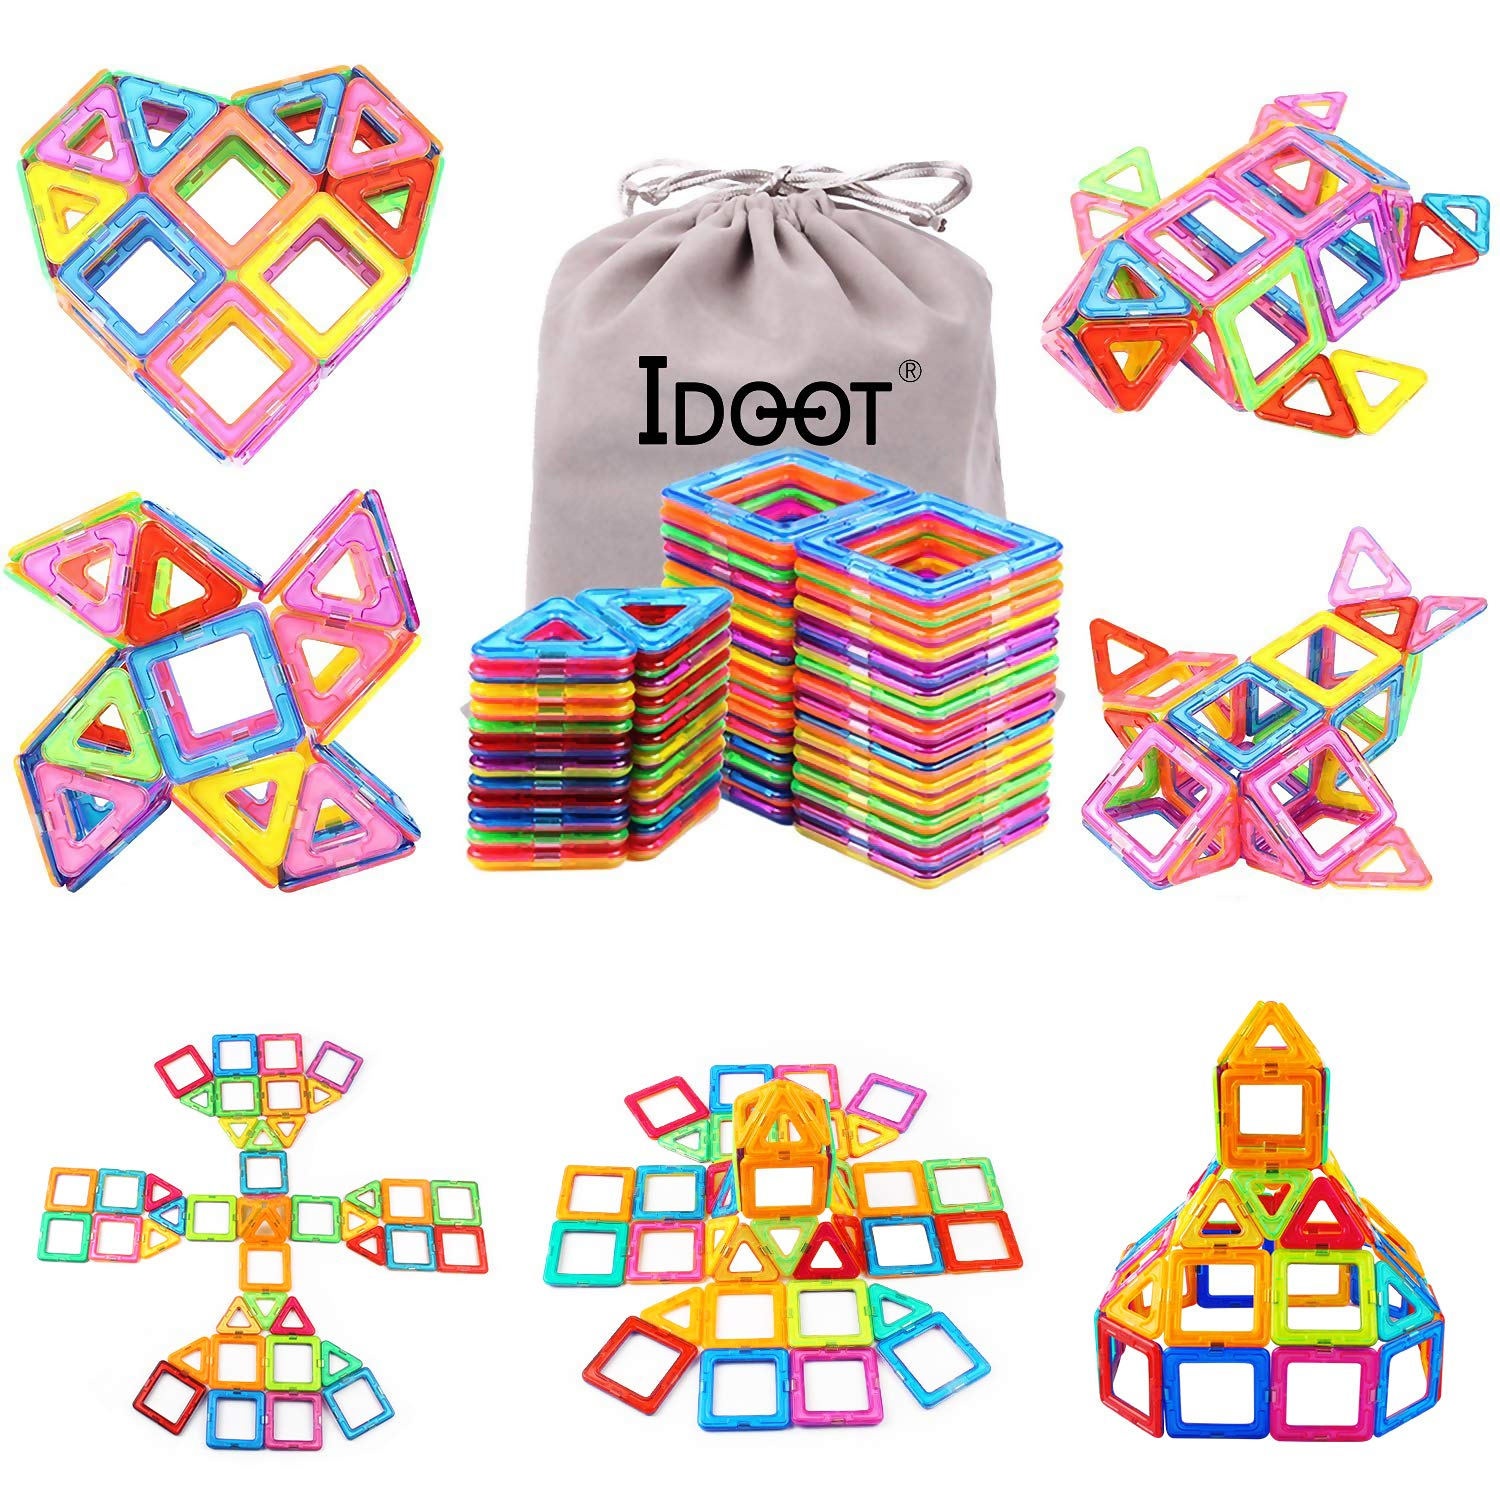 idoot Magnetic Blocks Building Set for Kids, Magnetic Tiles Educational Building Construction Toys for Boys & Girls with Storage Bag – 56Pcs